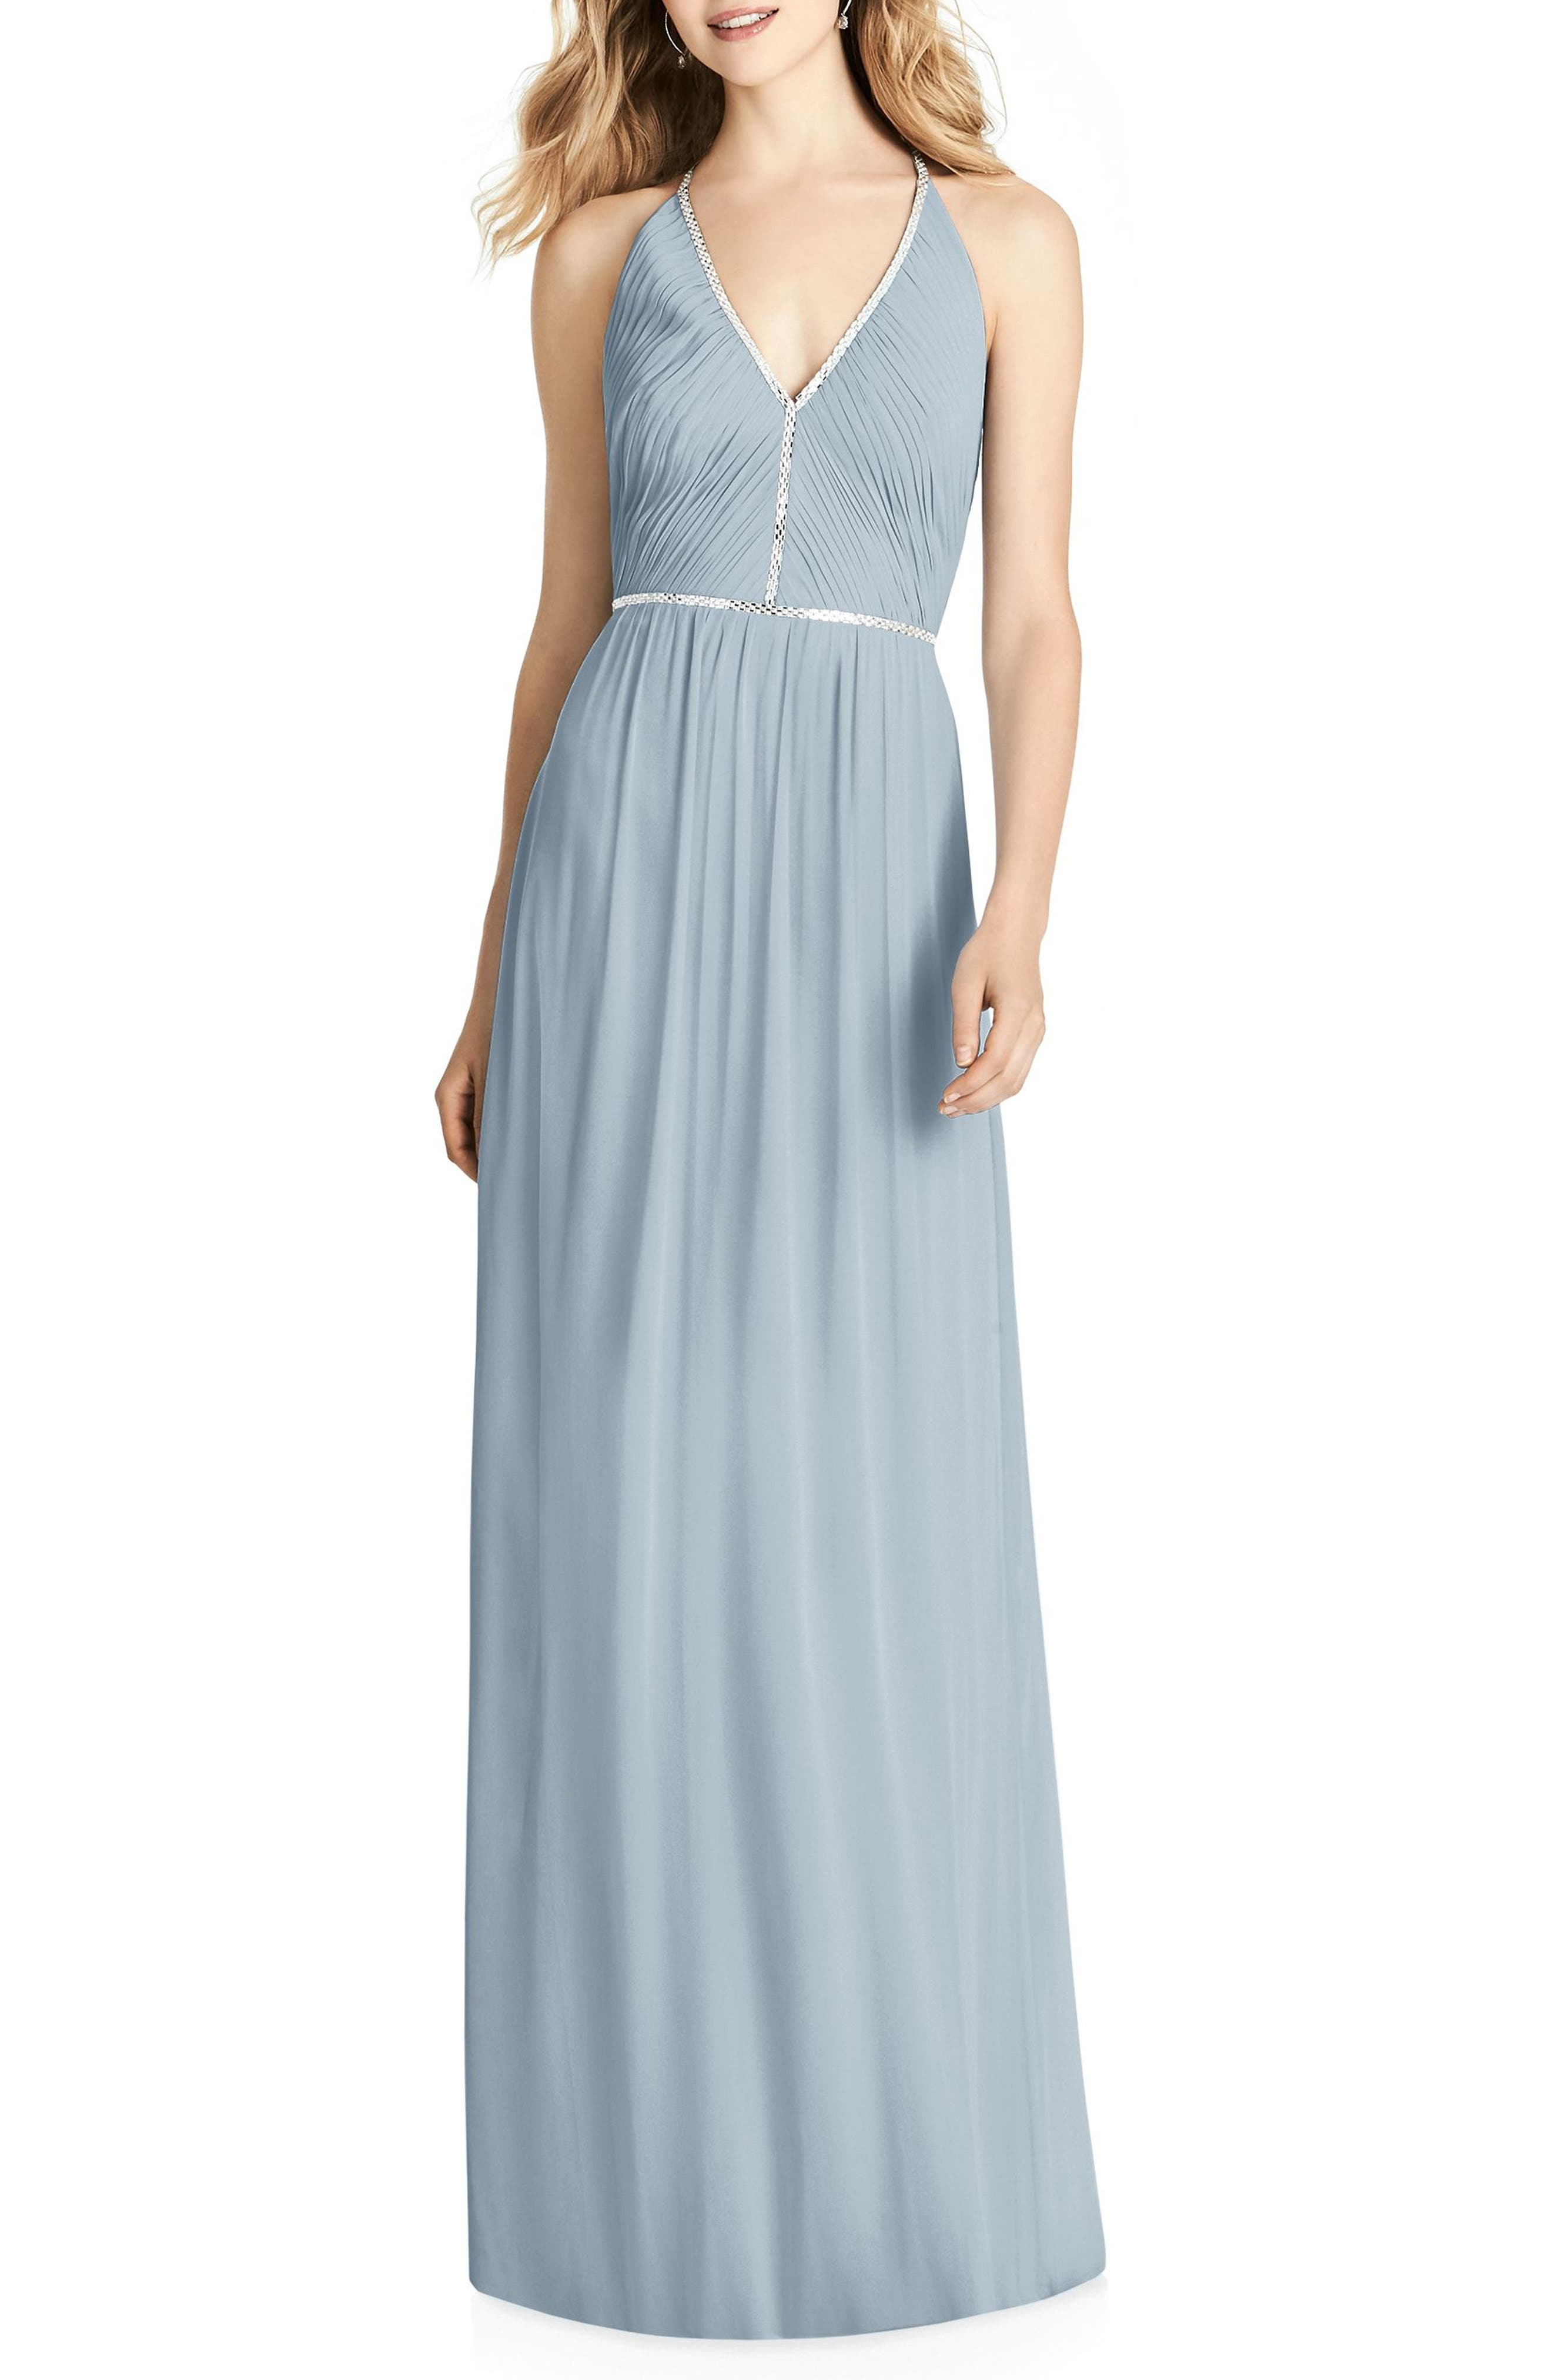 Main Image - Jenny Packham Pleated Bodice Chiffon Gown